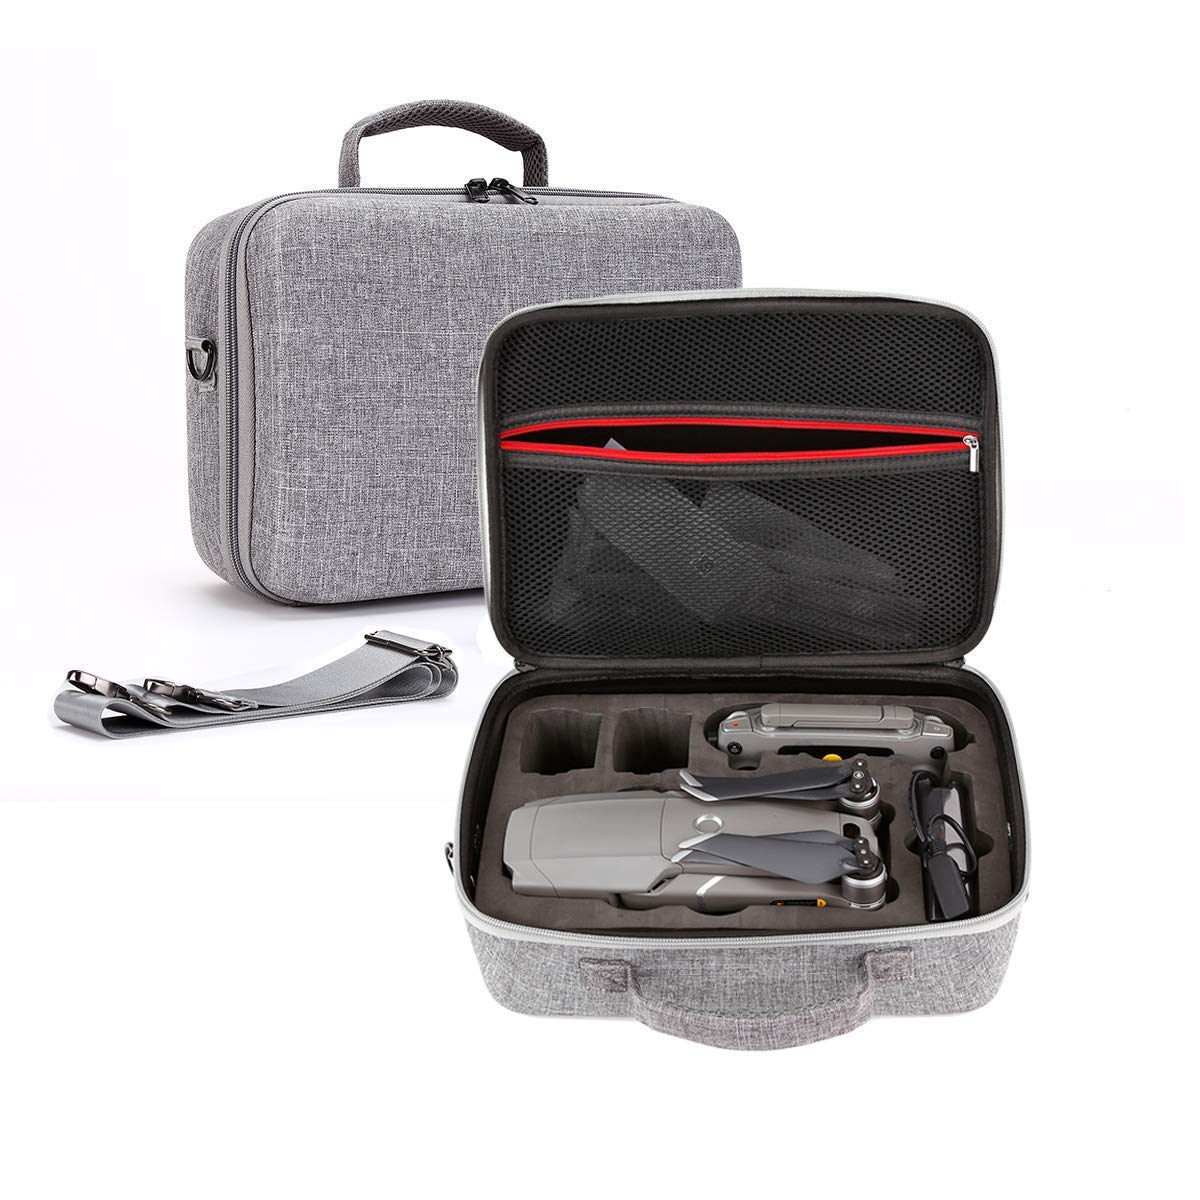 Mavic 2 Pro Waterproof Carrying Case STARTRC Carry Storage Case Bag Hardshell Shoulder Backpack for DJI Mavic 2 Pro Zoom Drone